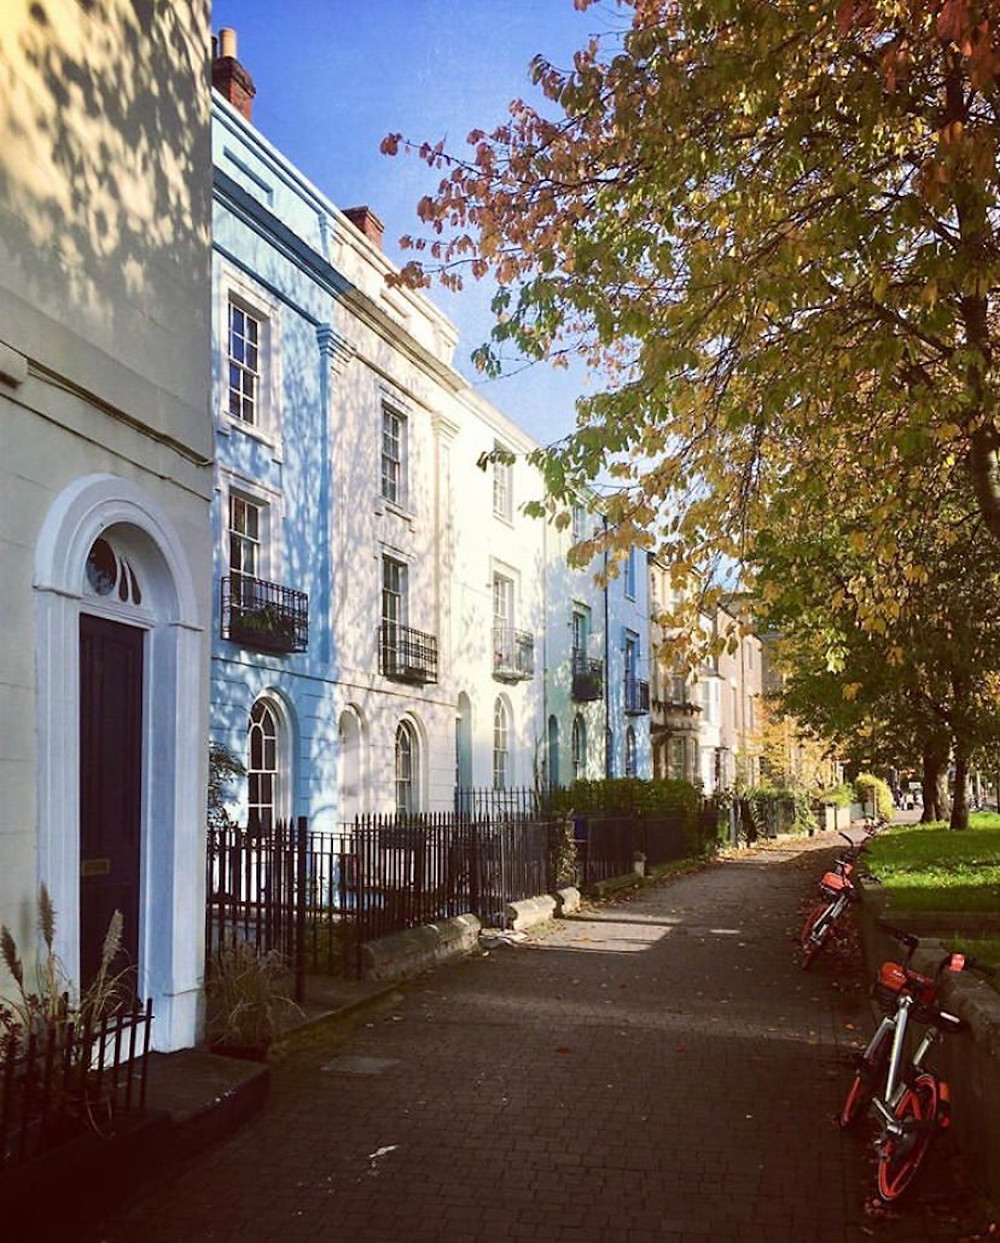 In 1881, the Herbert family lived on St Clement's Street